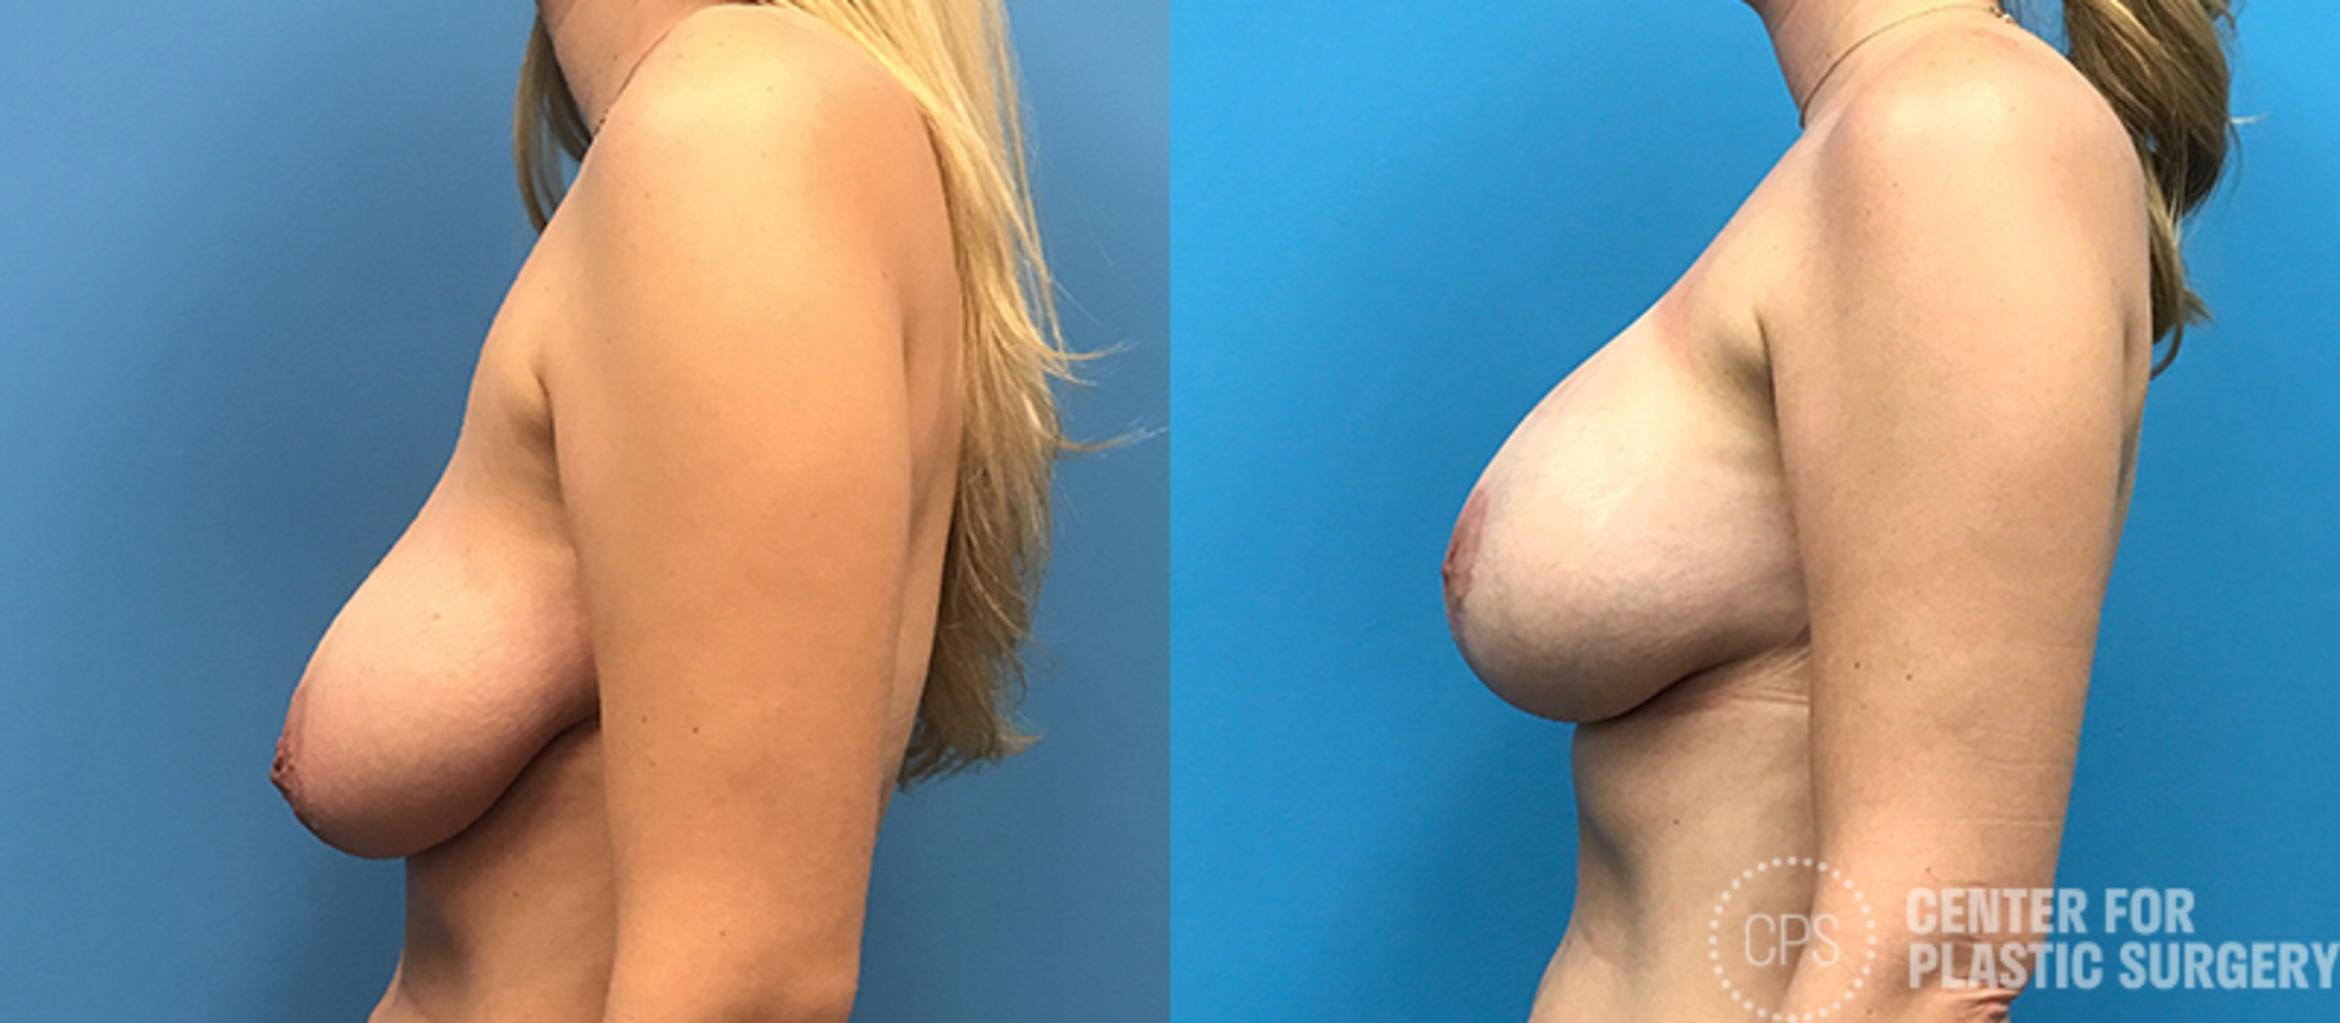 Breast Augmentation Case 115 Before & After Left Side | Annandale, VA & Chevy Chase, MD, Washington D.C. Metropolitan Area | Center for Plastic Surgery